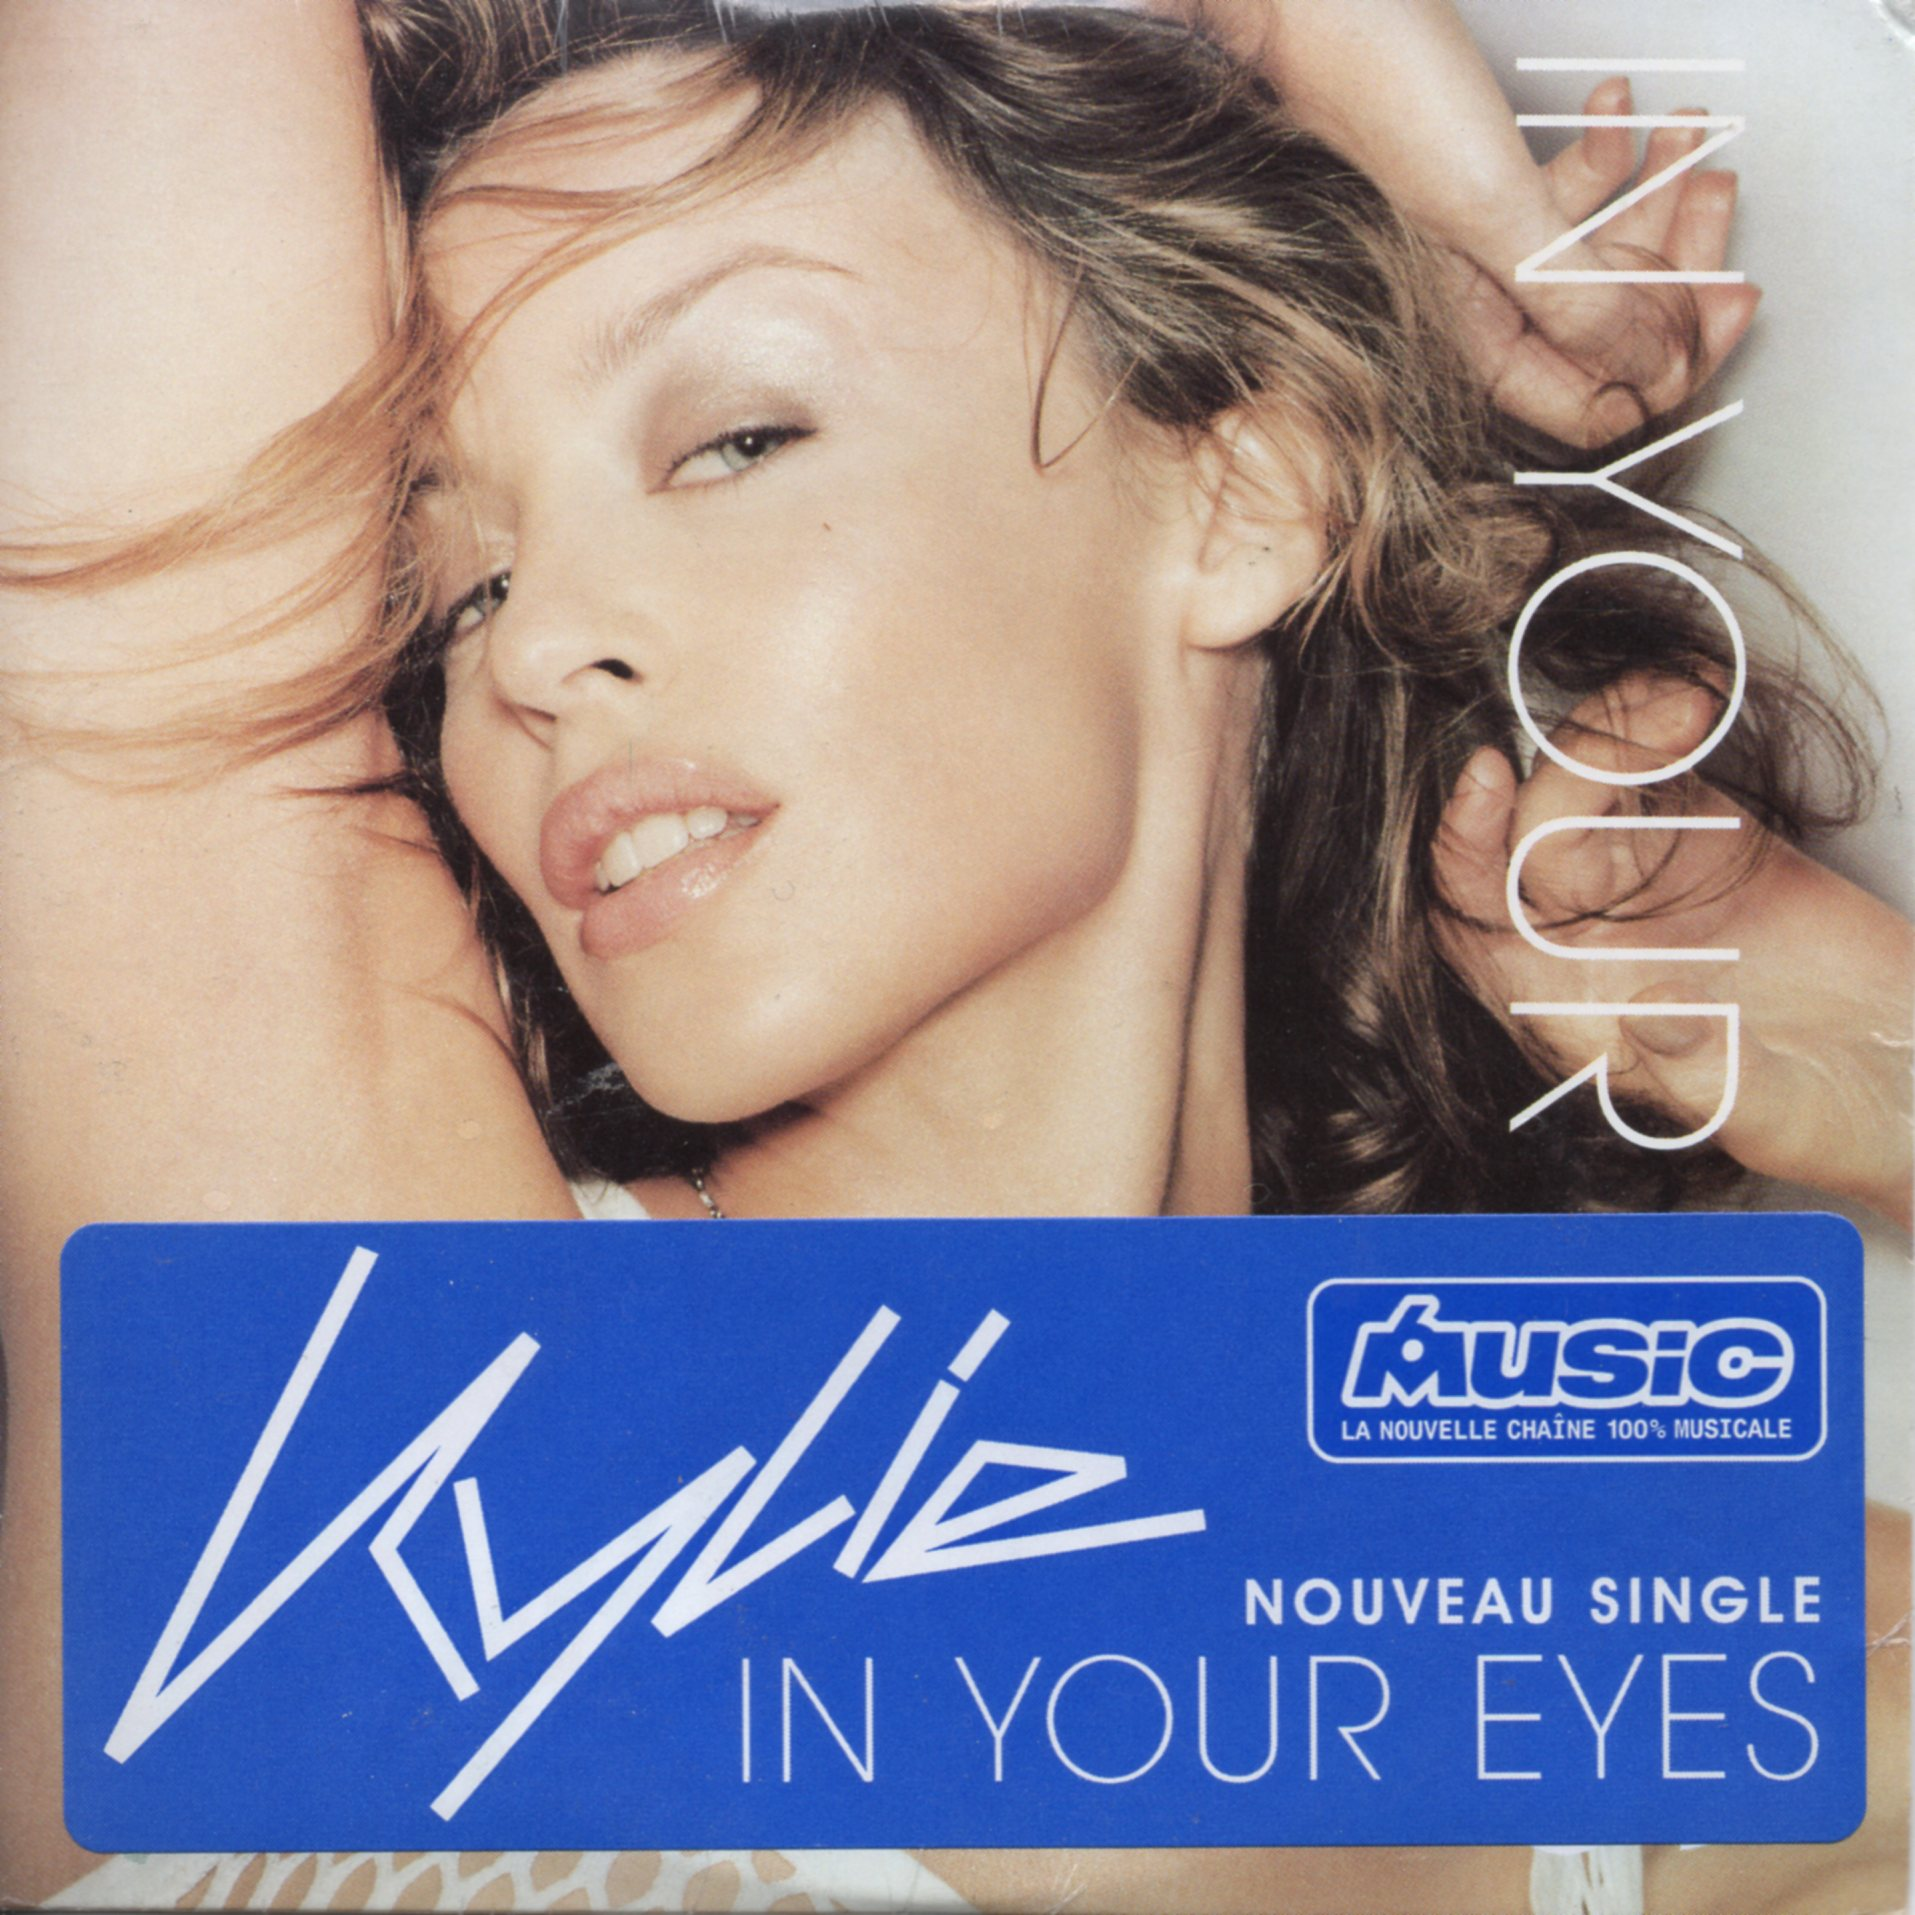 KYLIE MINOGUE - In Your Eyes 2-track CARD SLEEVE - With French Sticker - CD single